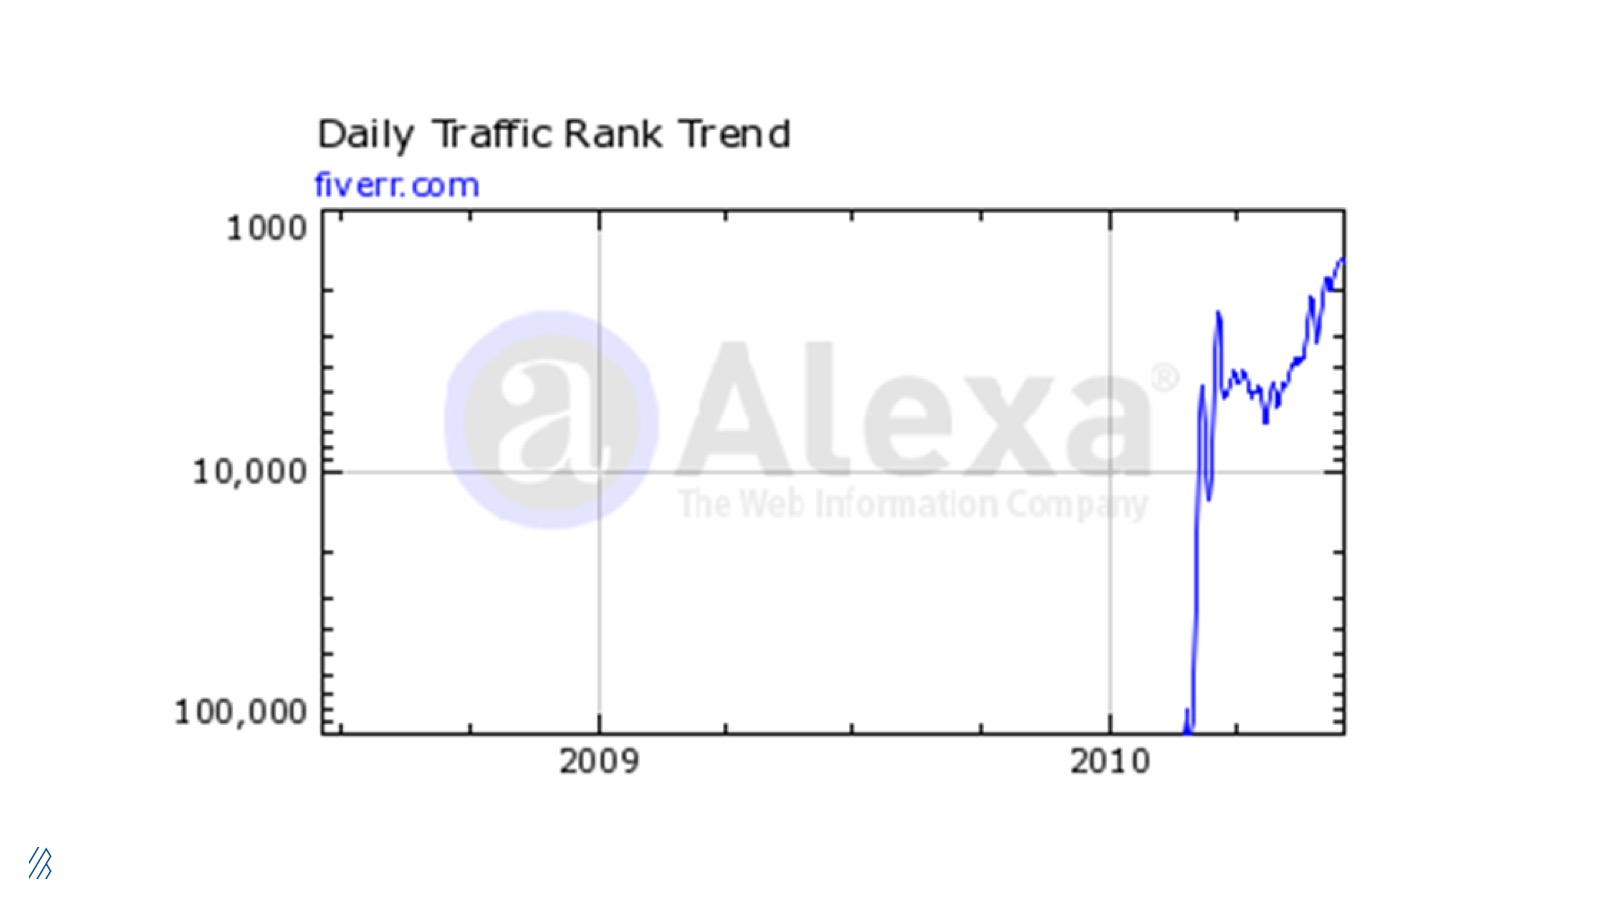 Alexa data of Fiverr's daily traffic rank trend in 2010